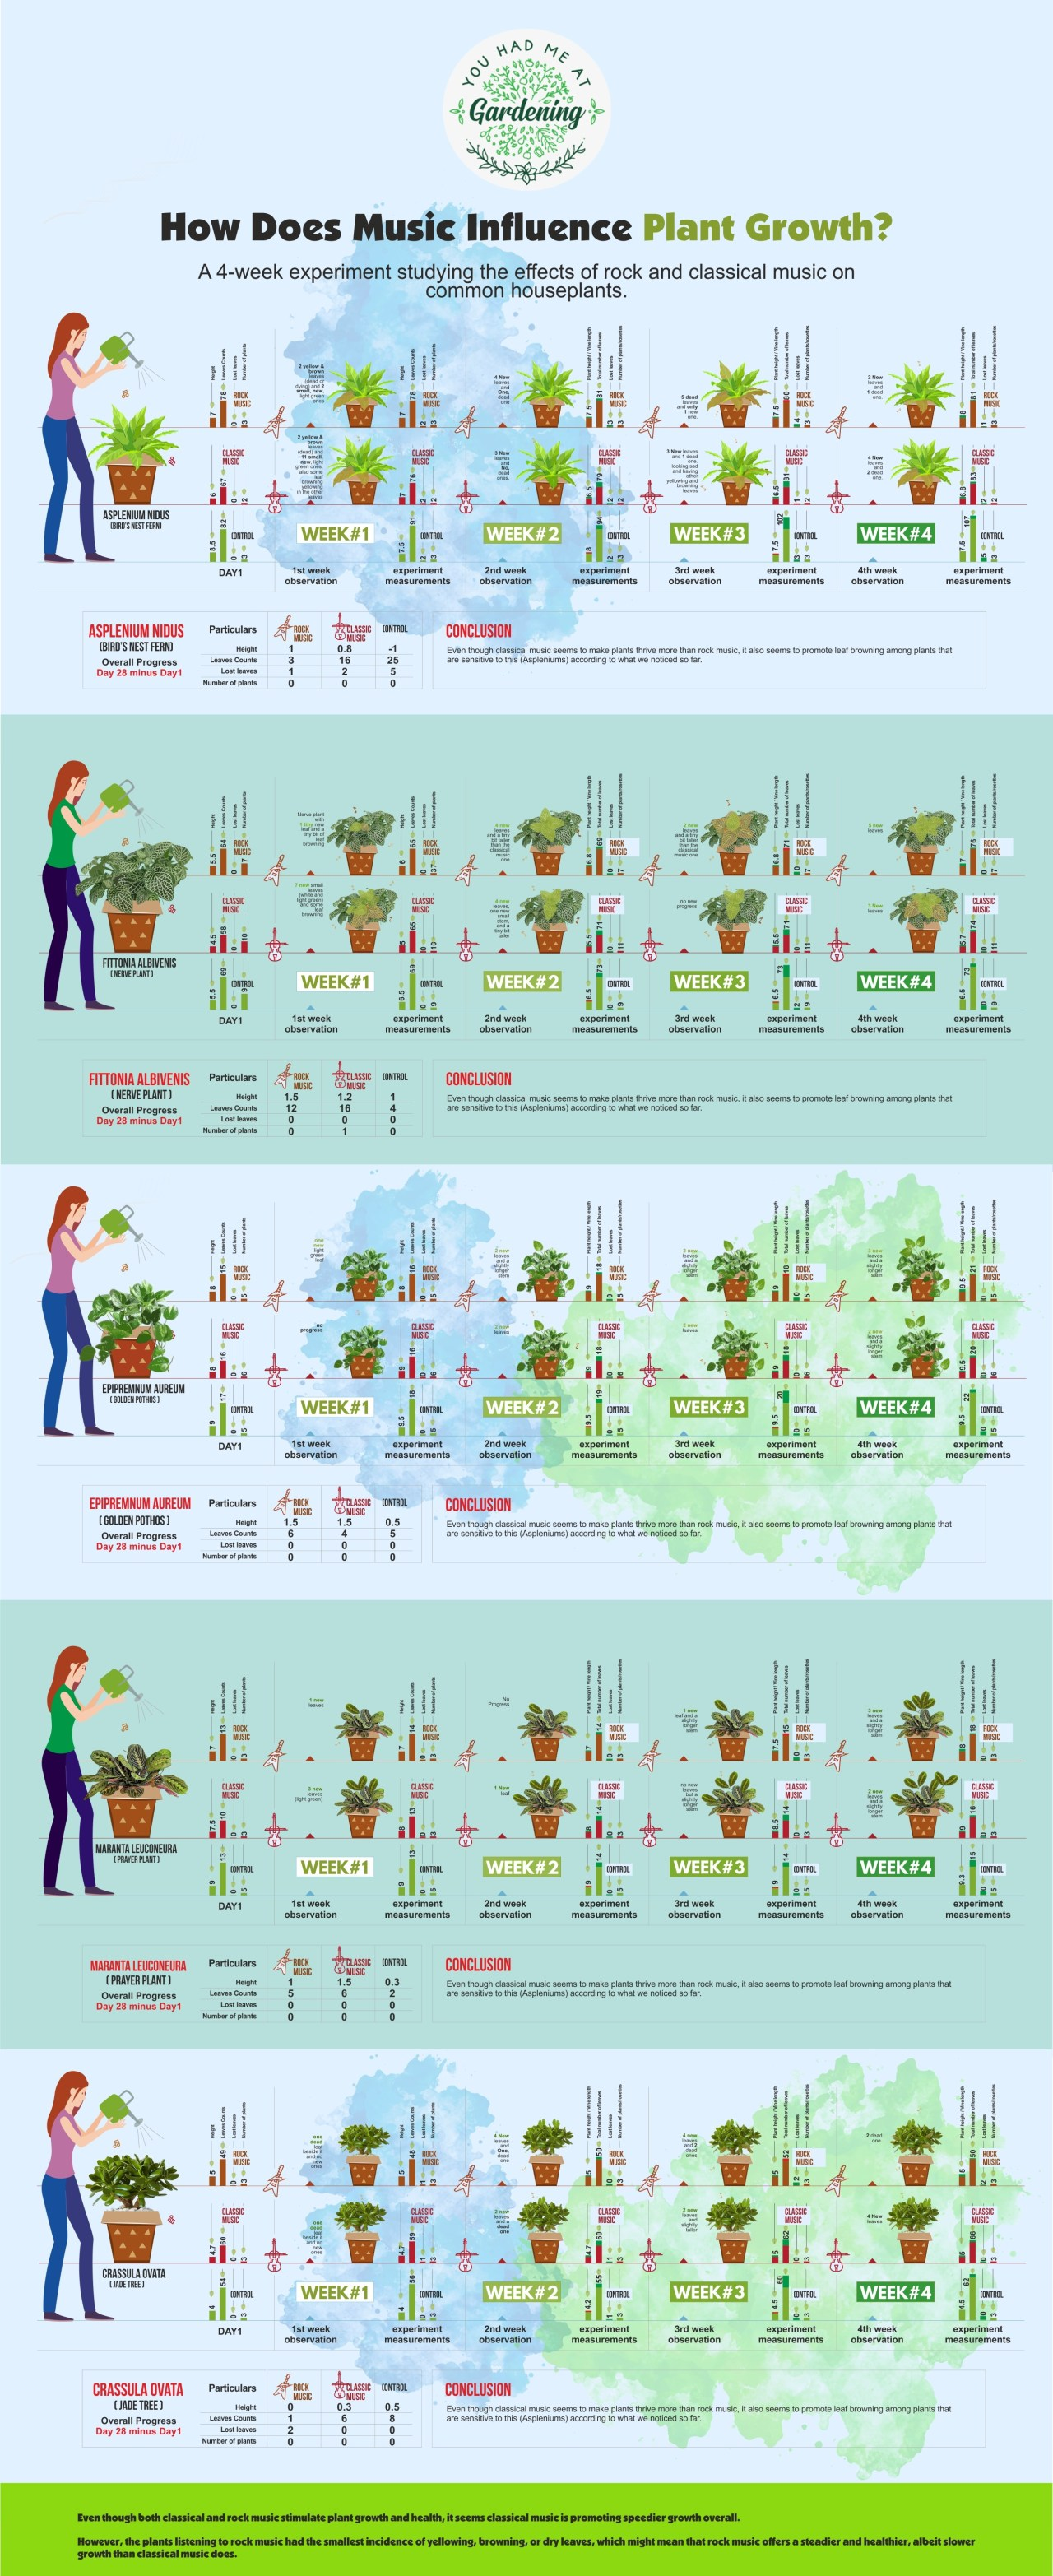 How Does Music Influence Plant Growth?